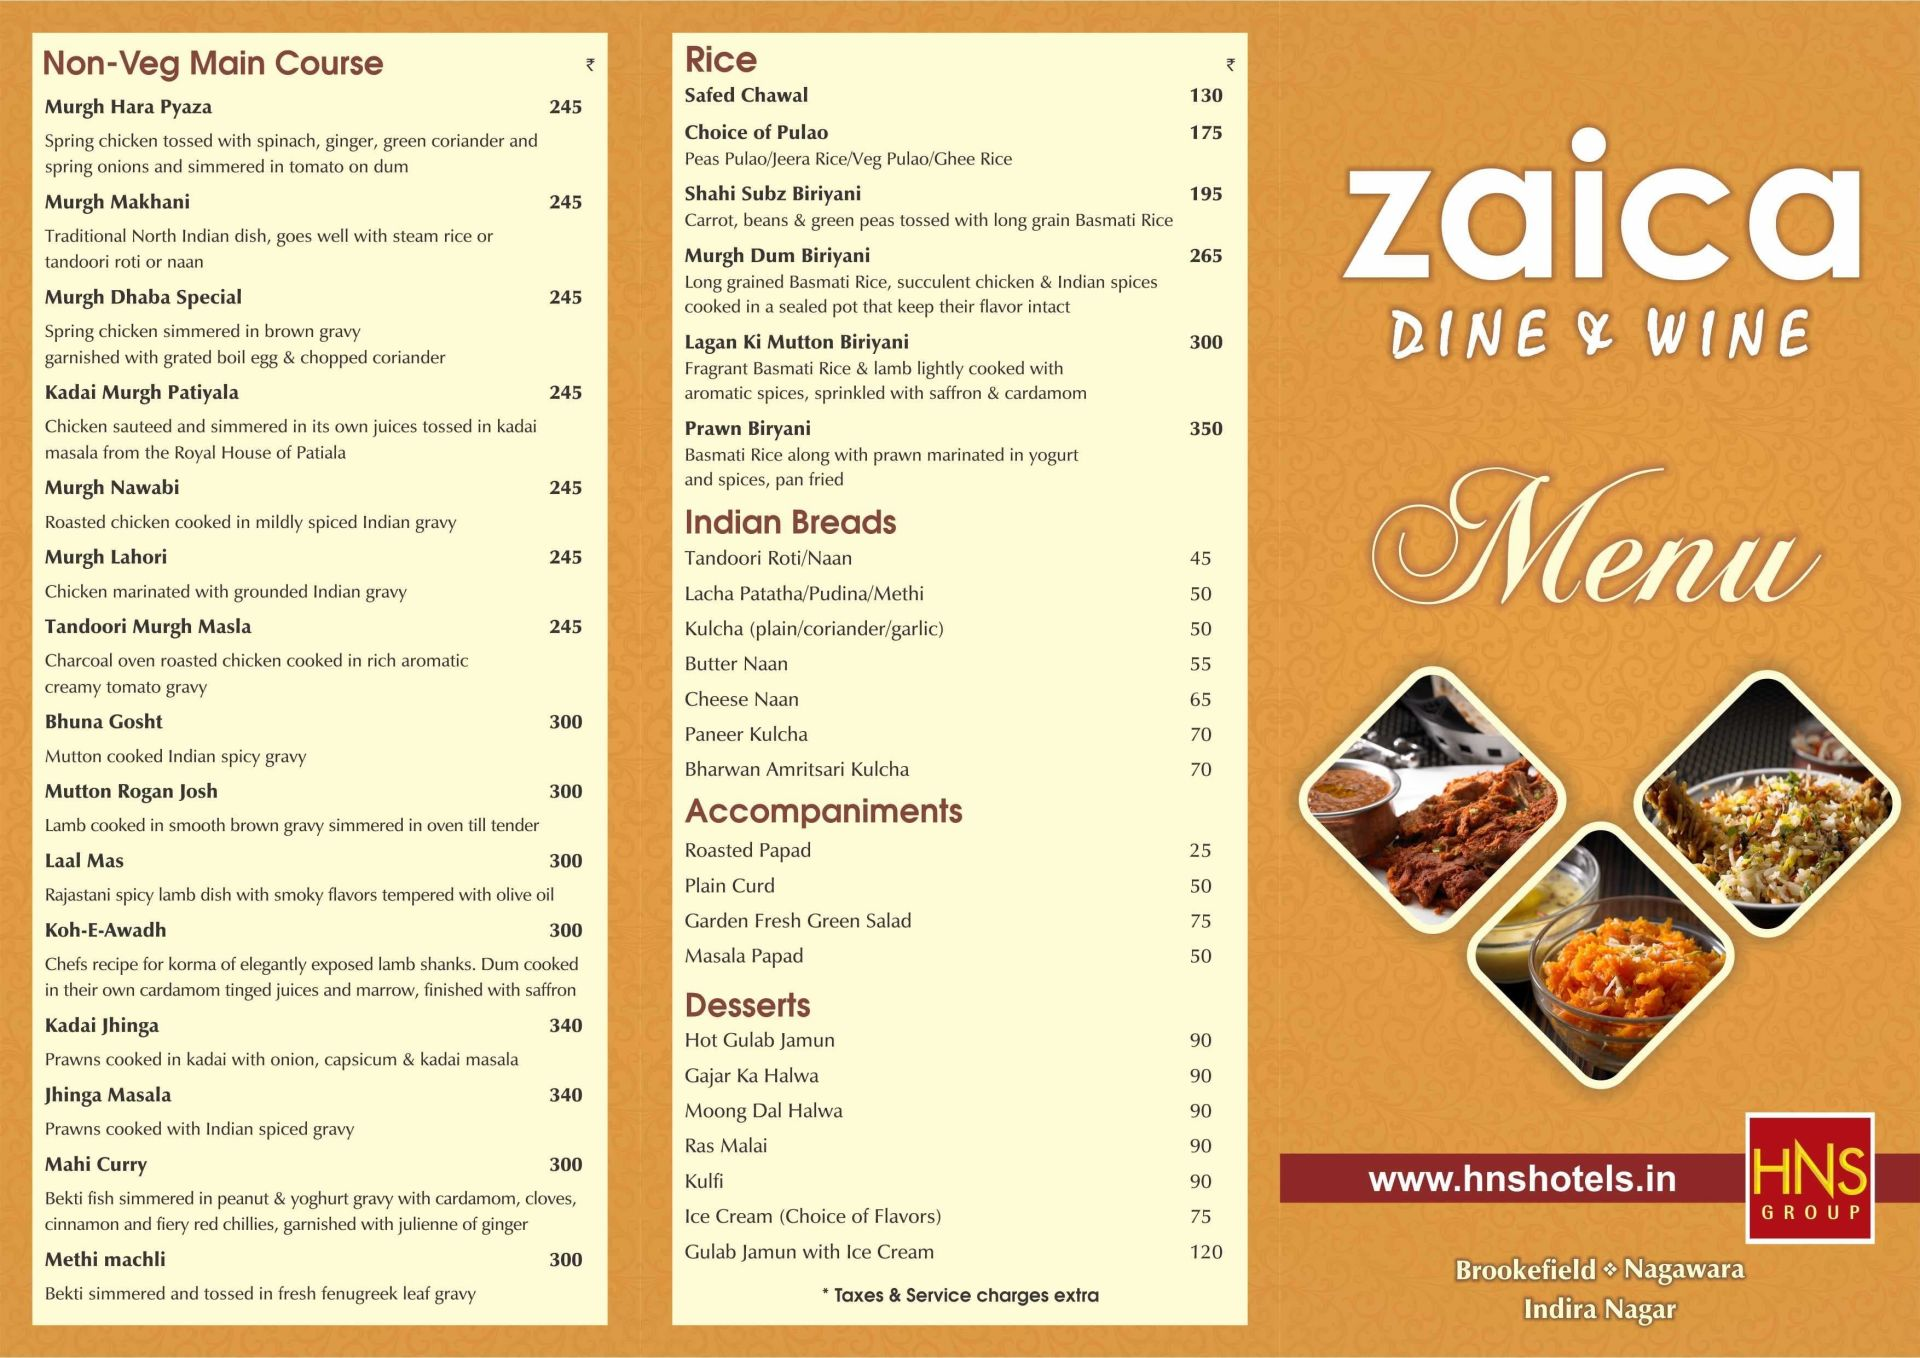 Menu of the Zaica Dine and Wine